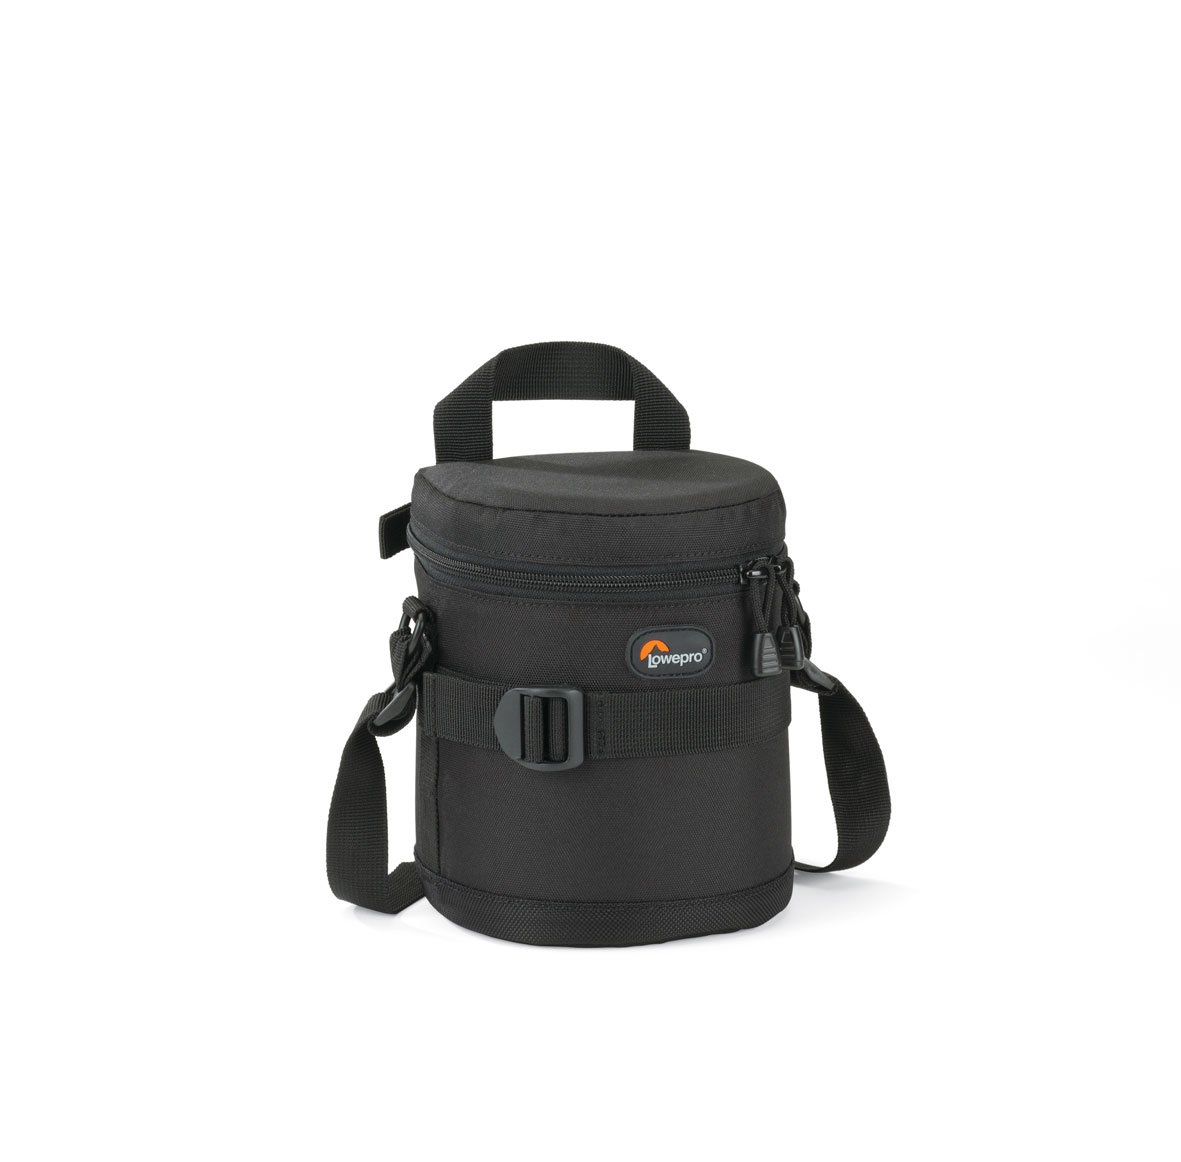 Lowepro Lens Case 11 x 14 cm - Black LP36305